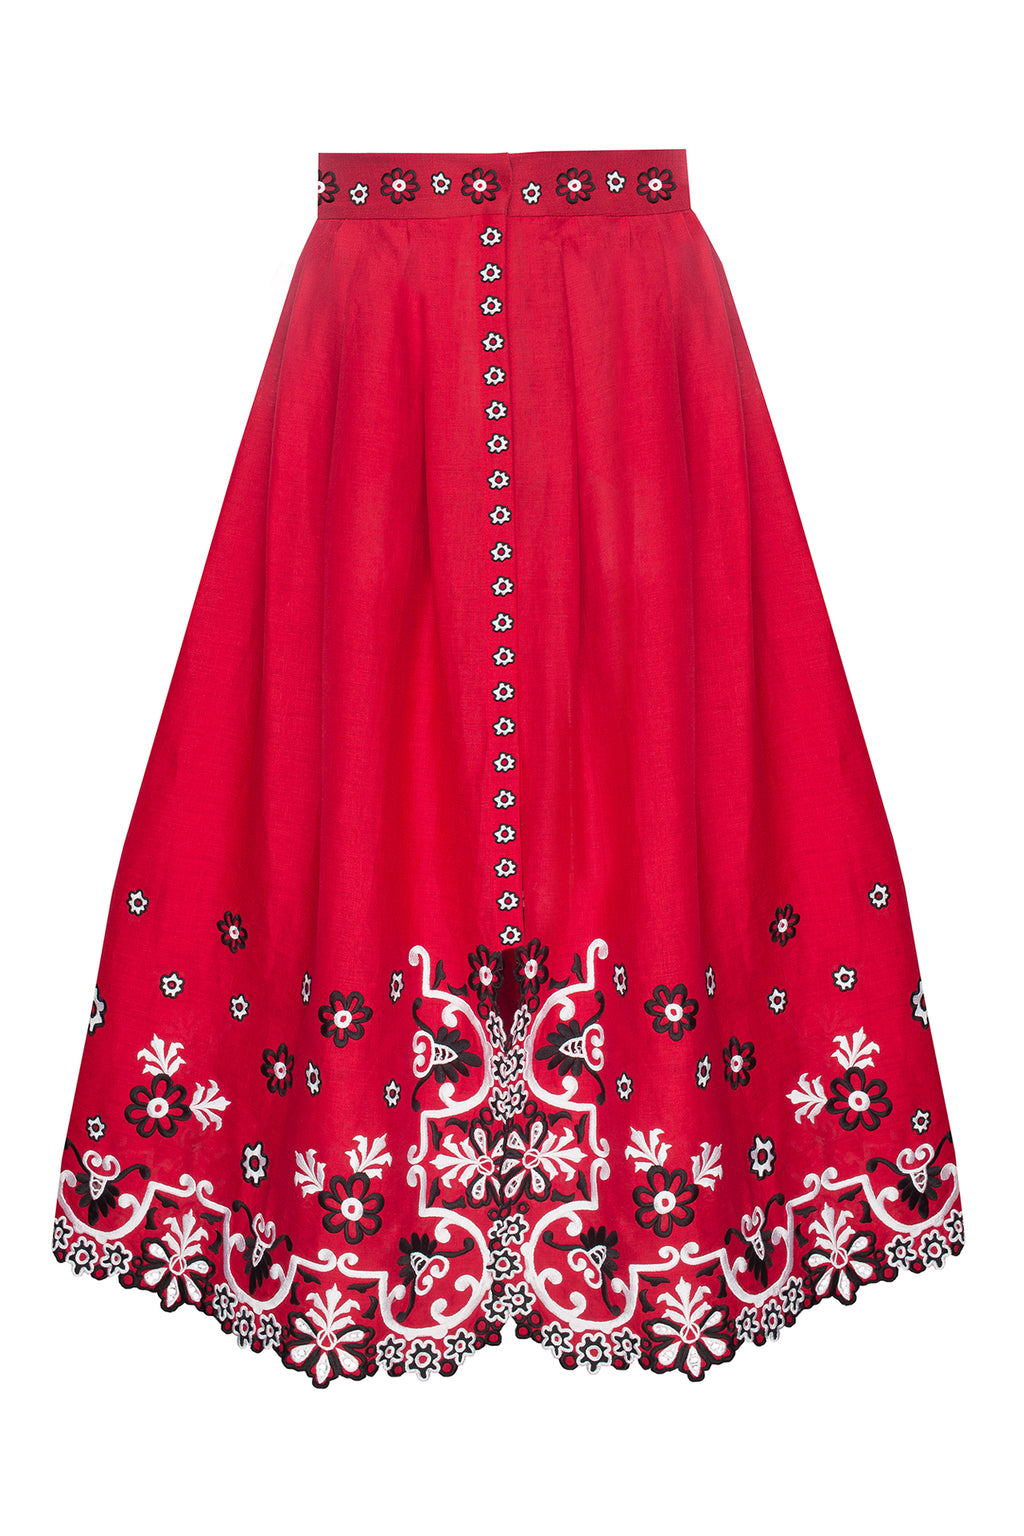 CHAMOMILE skirt in red